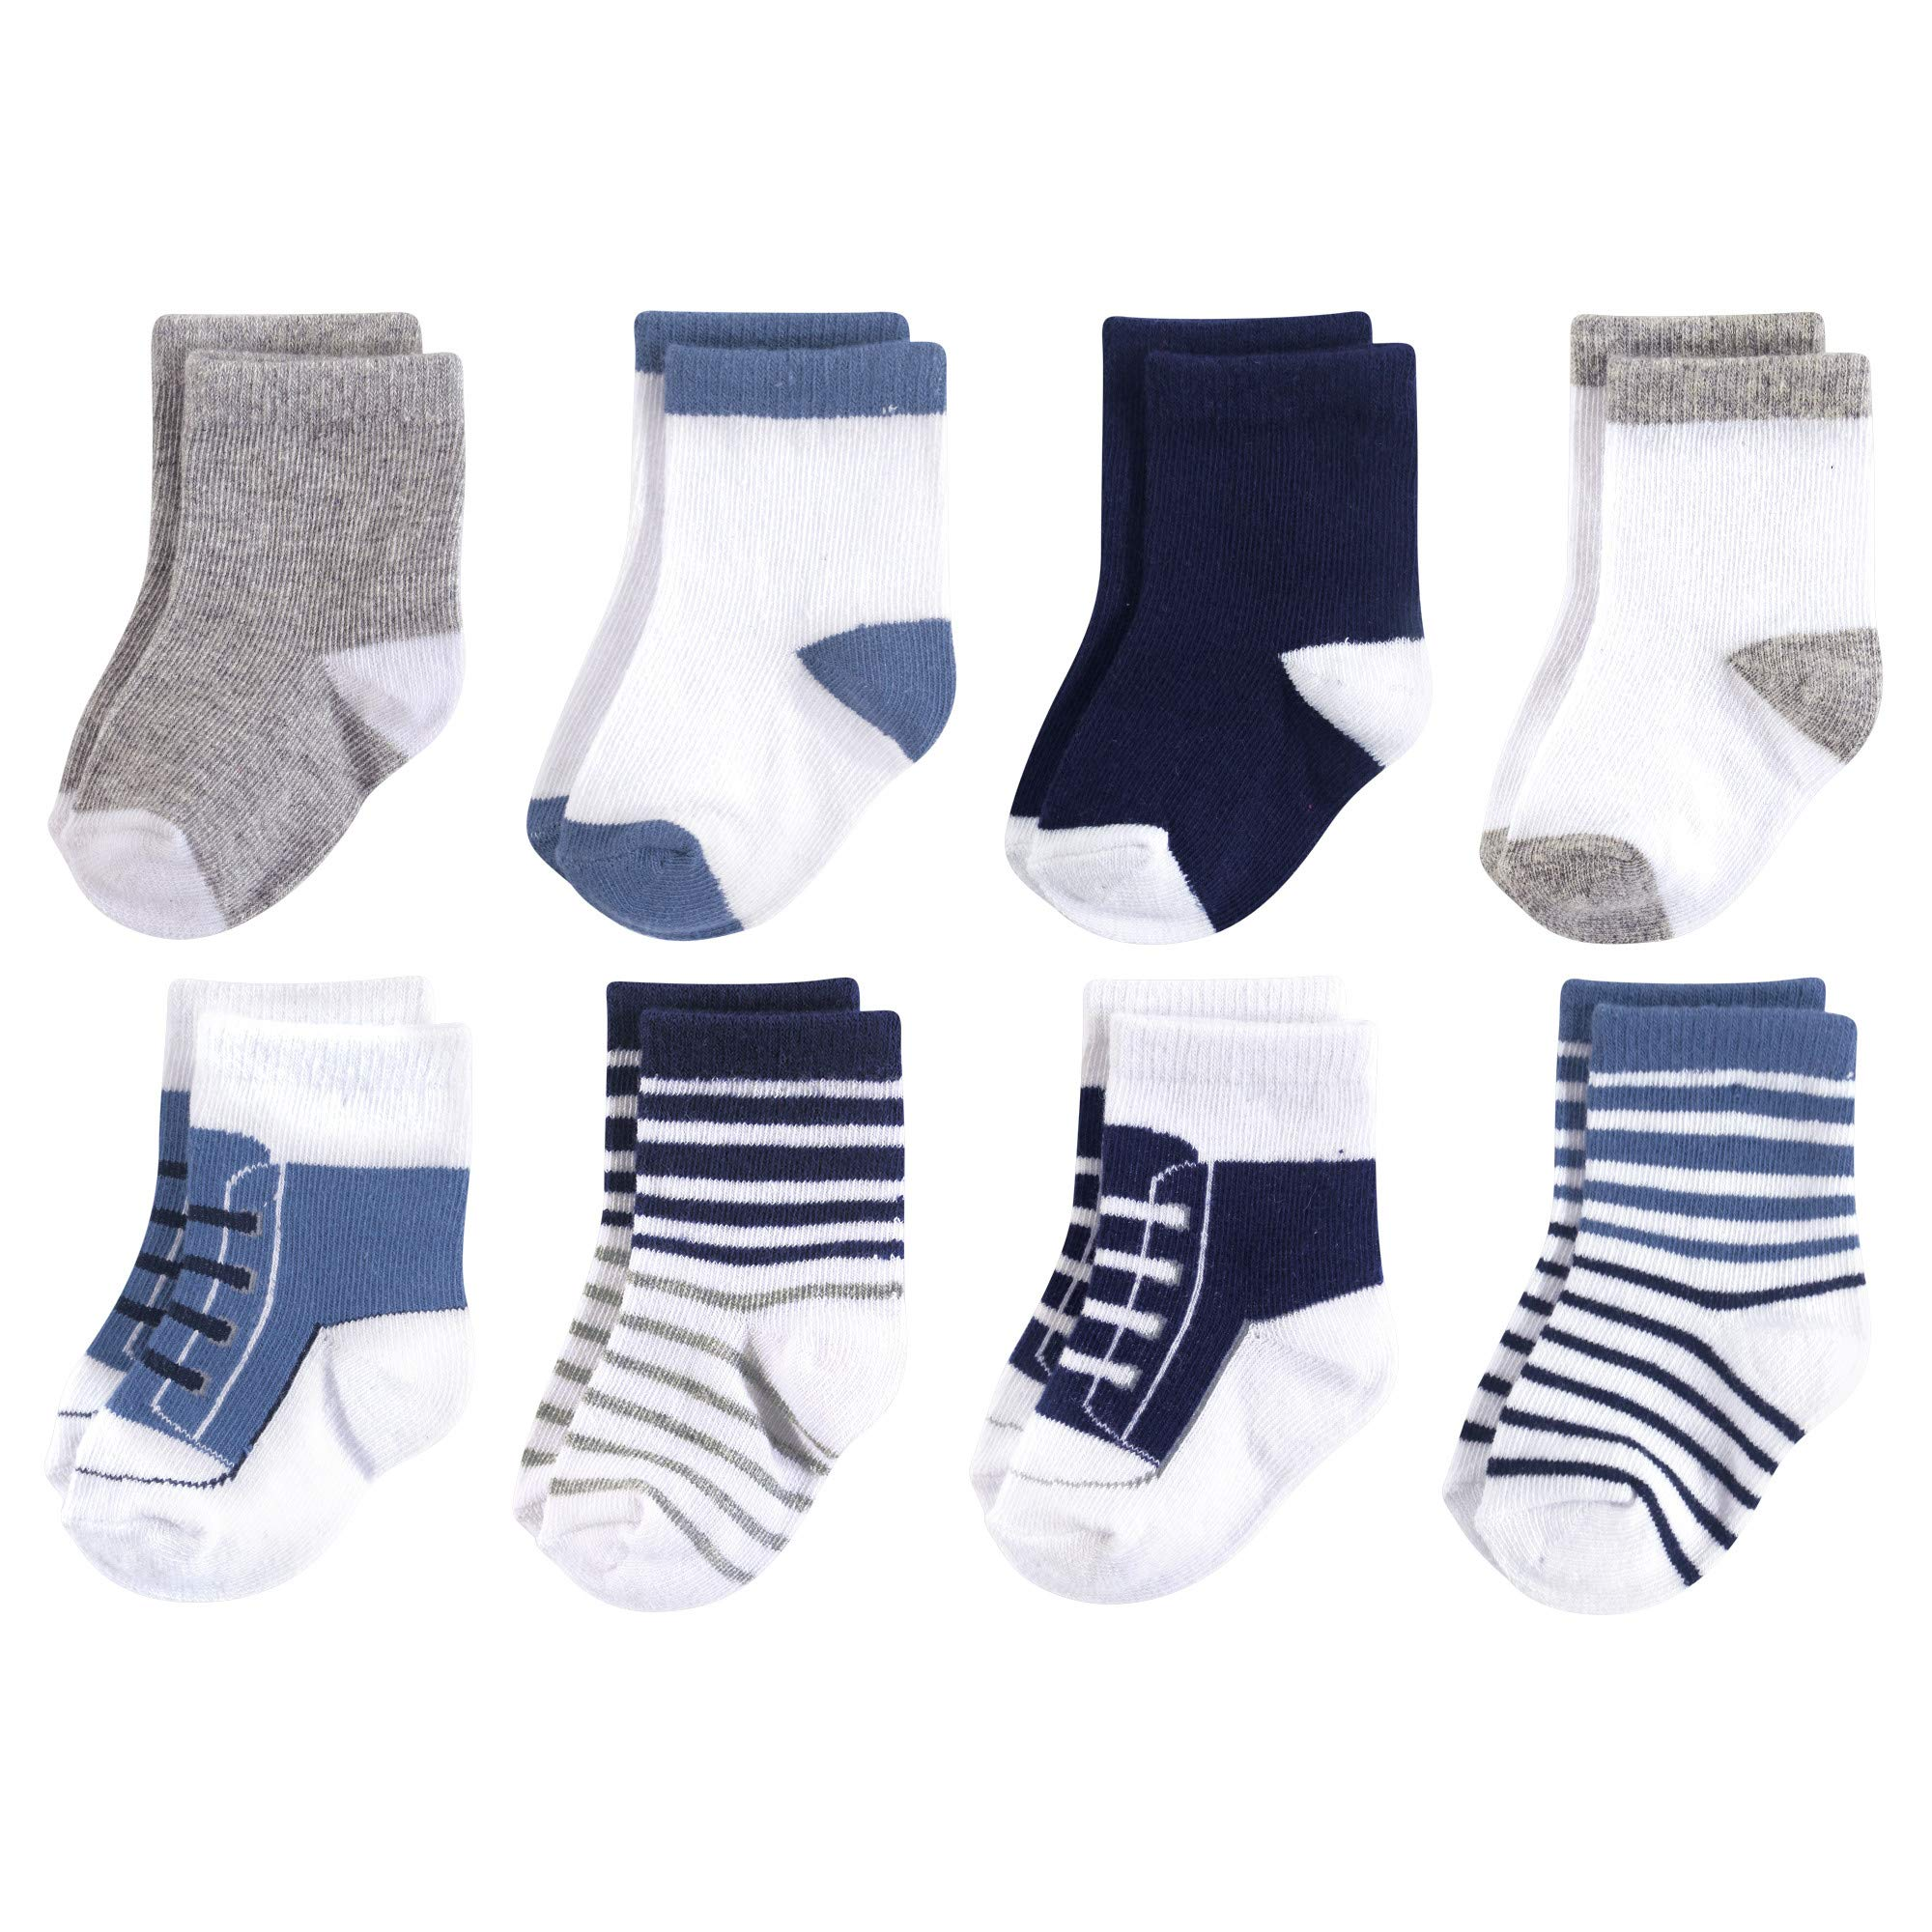 Luvable Friends Baby Basic Socks, Navy And Gray